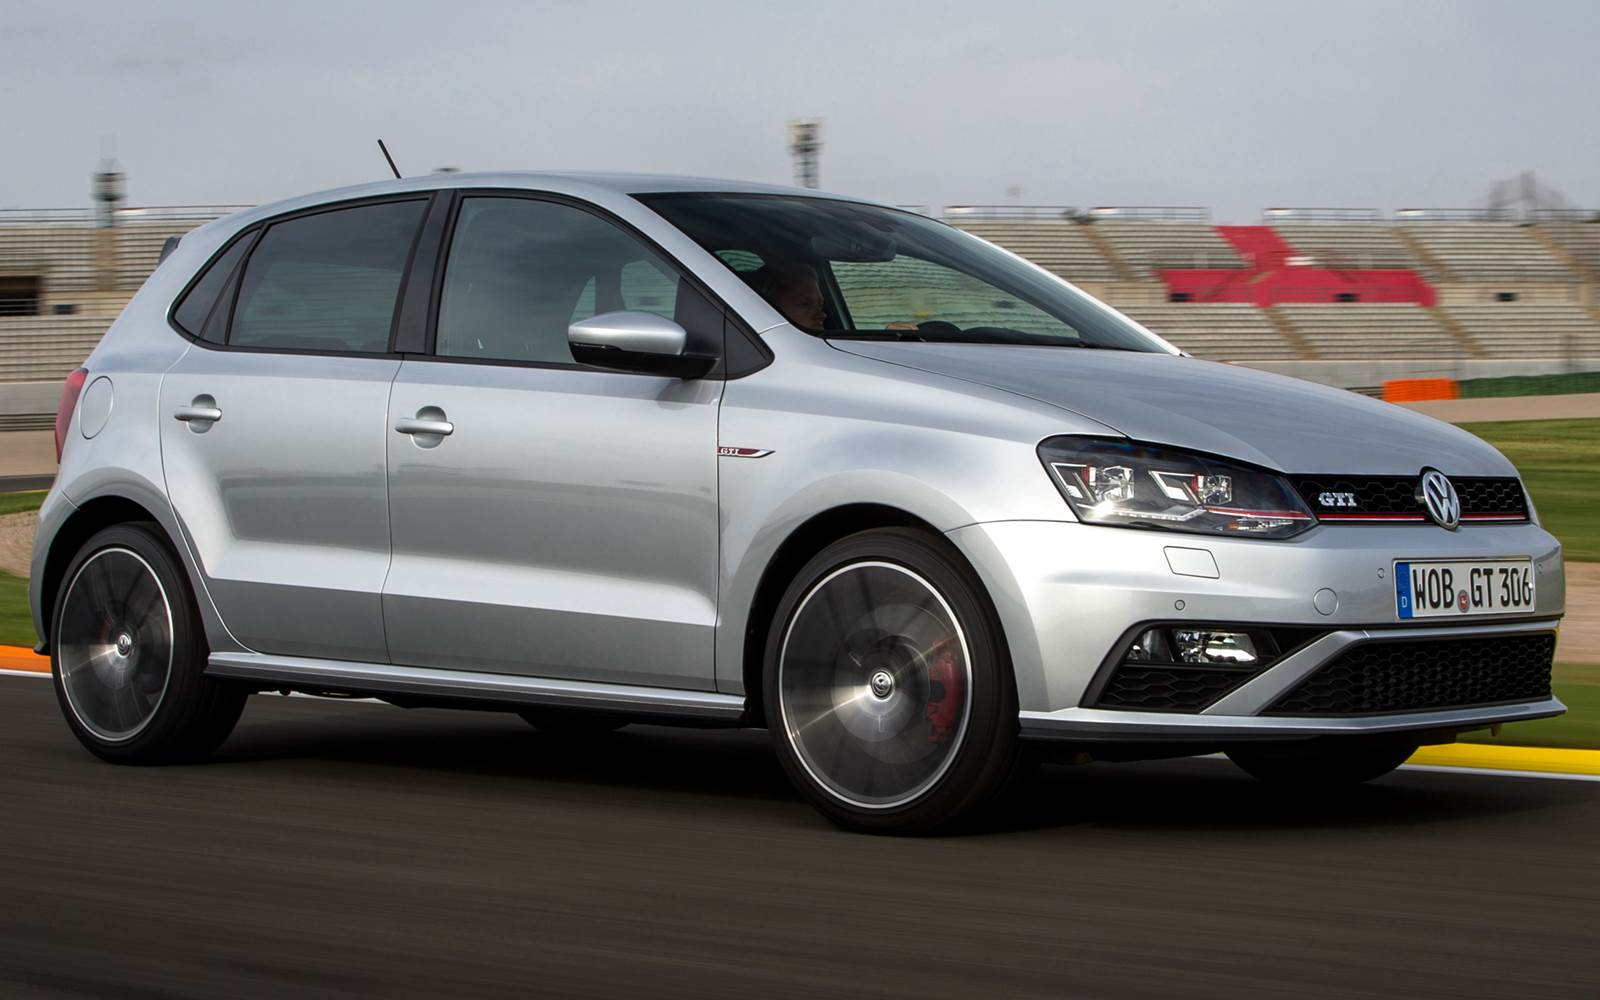 VW Polo 2016: carro compacto mais vendido do mundo